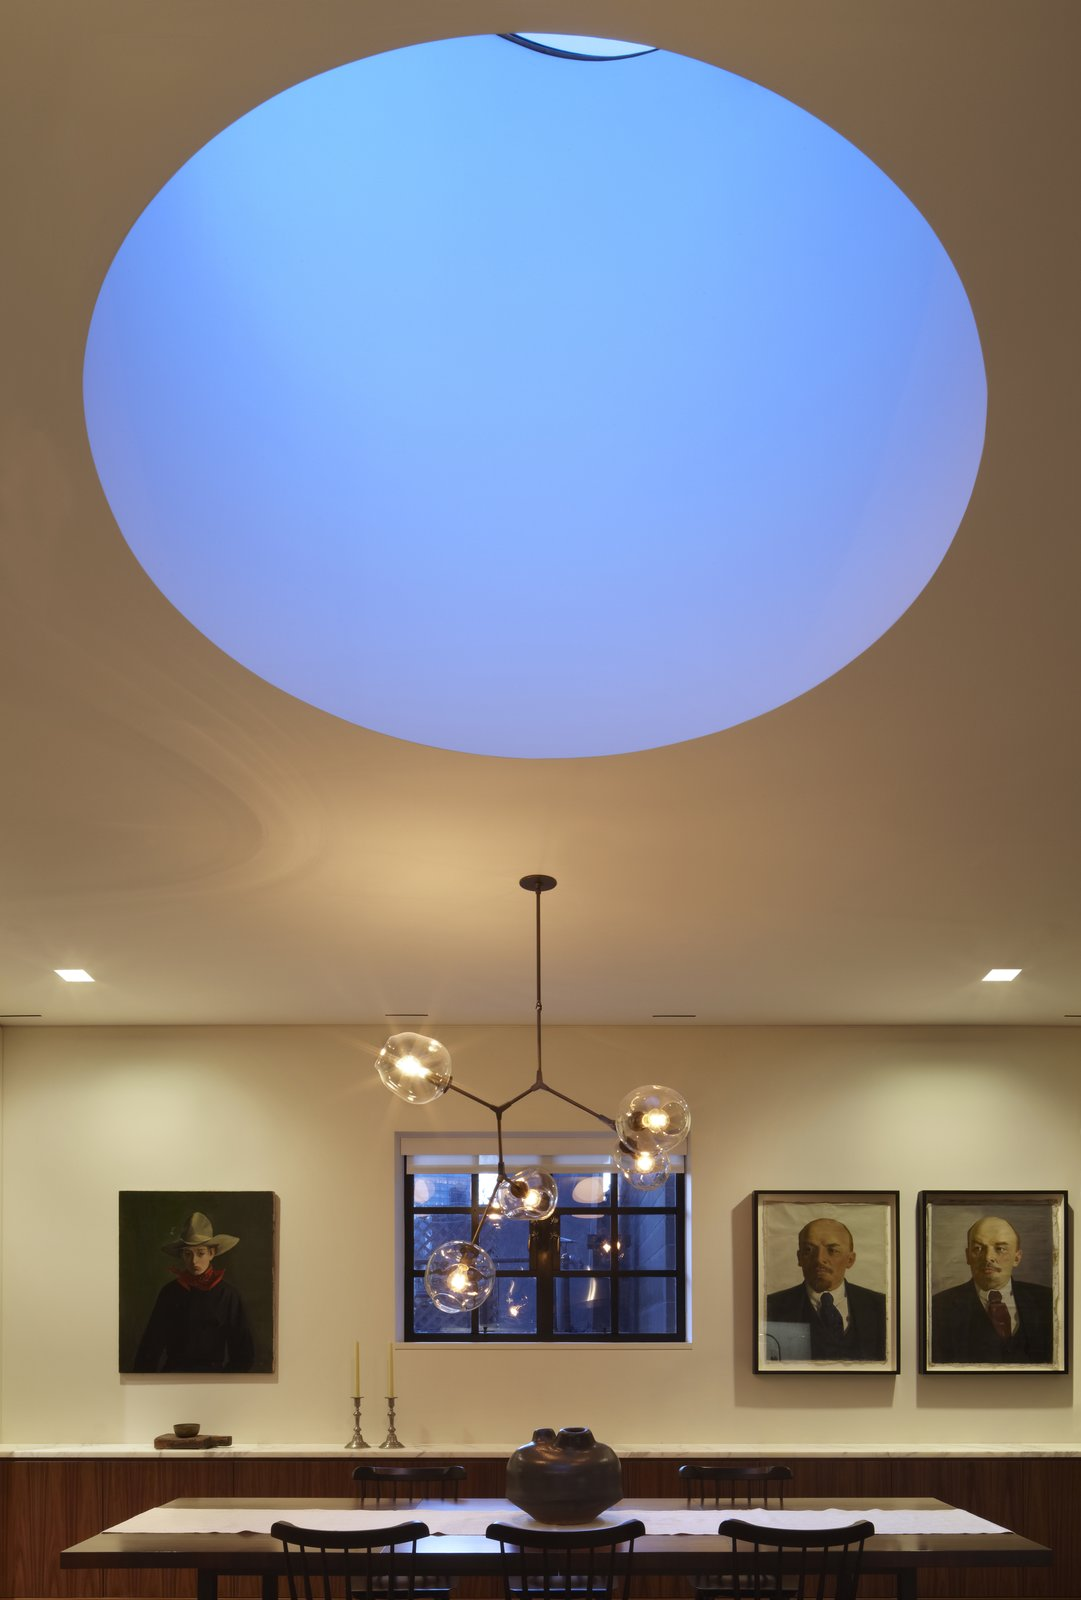 A view of the drum skylight at dusk.  Early in the design process we discussed with our clients the work of James Turrell including a field trip to Meeting at MoMA PS1 on a very cold but wonderfully quiet day.  One of the things we really like about Mr. Turrell's work is the flattening of perspective while creating a meditative balance between lightness and weight.  Here the drum skylight while physically large recedes into the ceiling plan